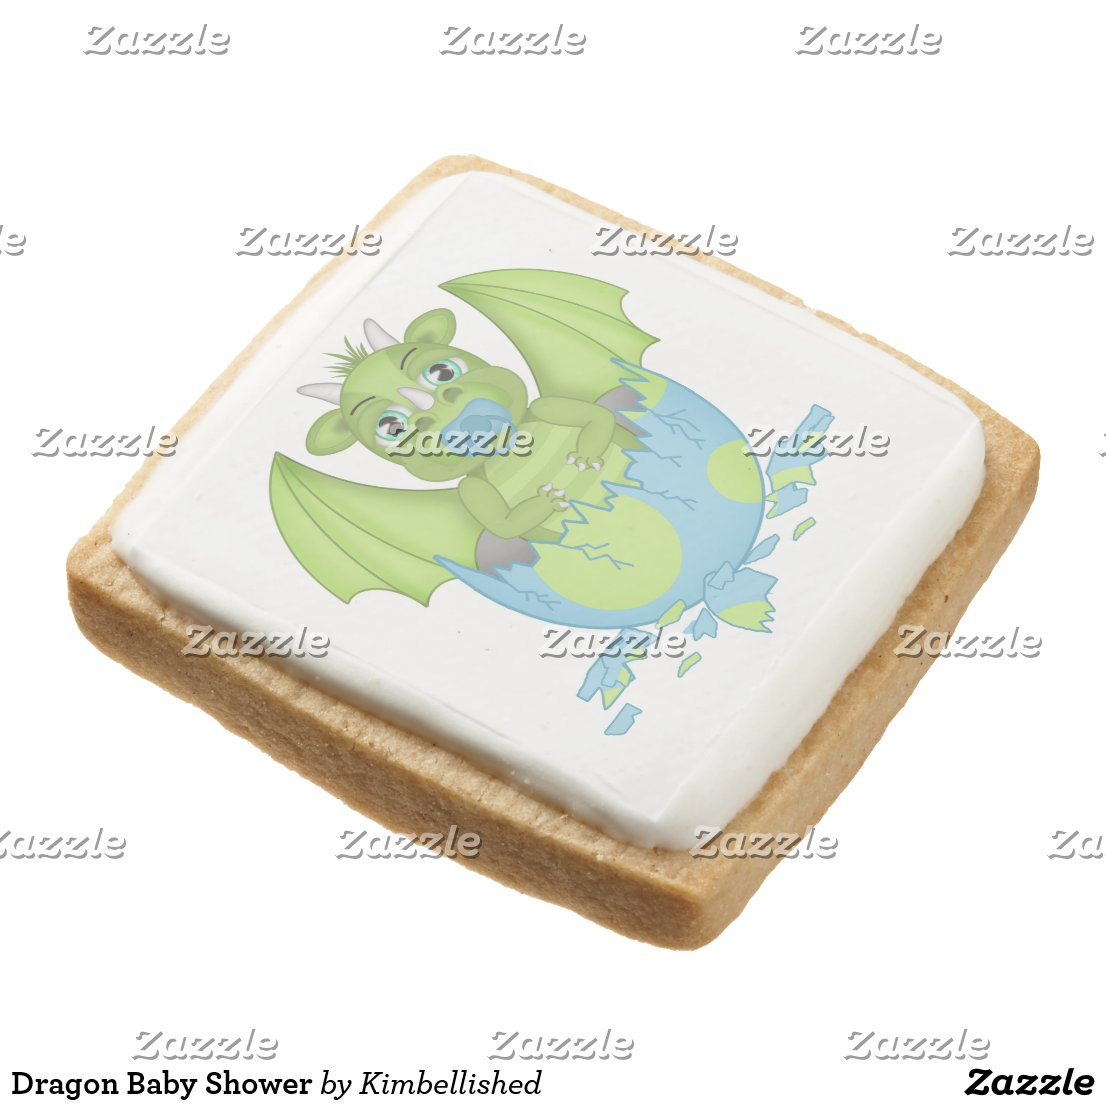 Dragon Baby Shower Square Shortbread Cookie